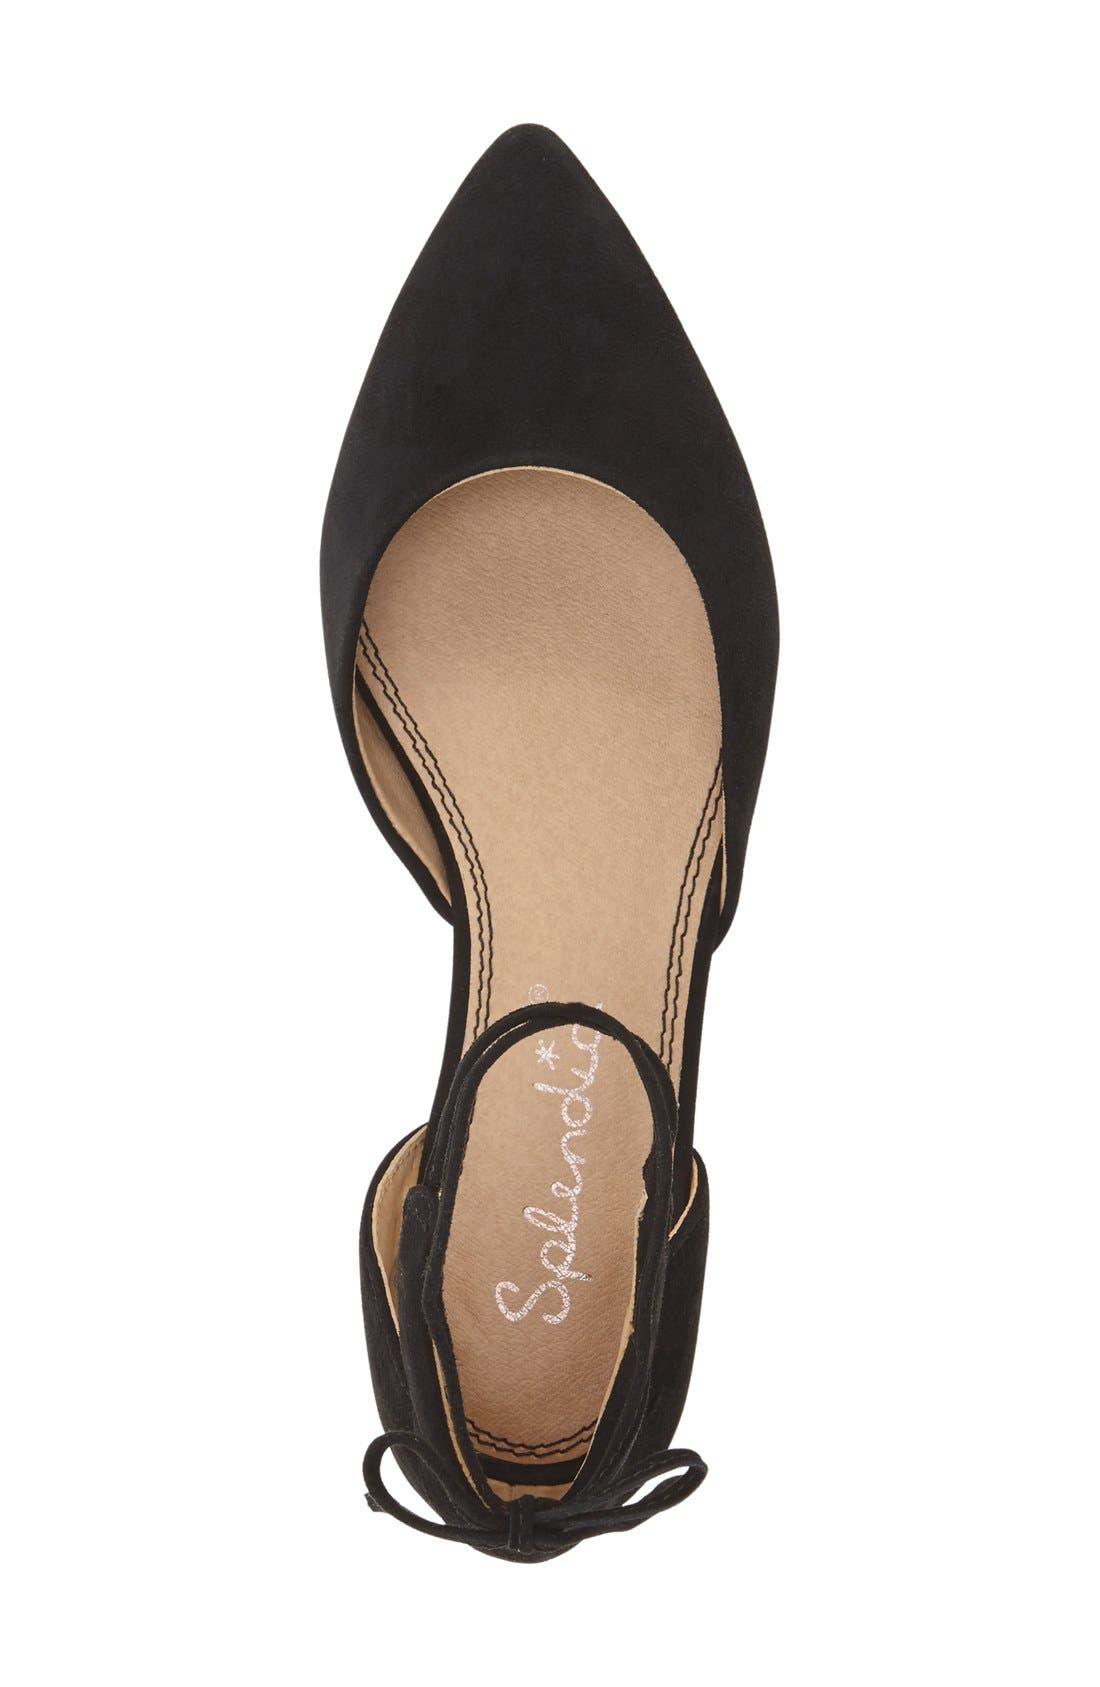 'Annabelle' Lace-Up d'Orsay Flat,                             Alternate thumbnail 4, color,                             001